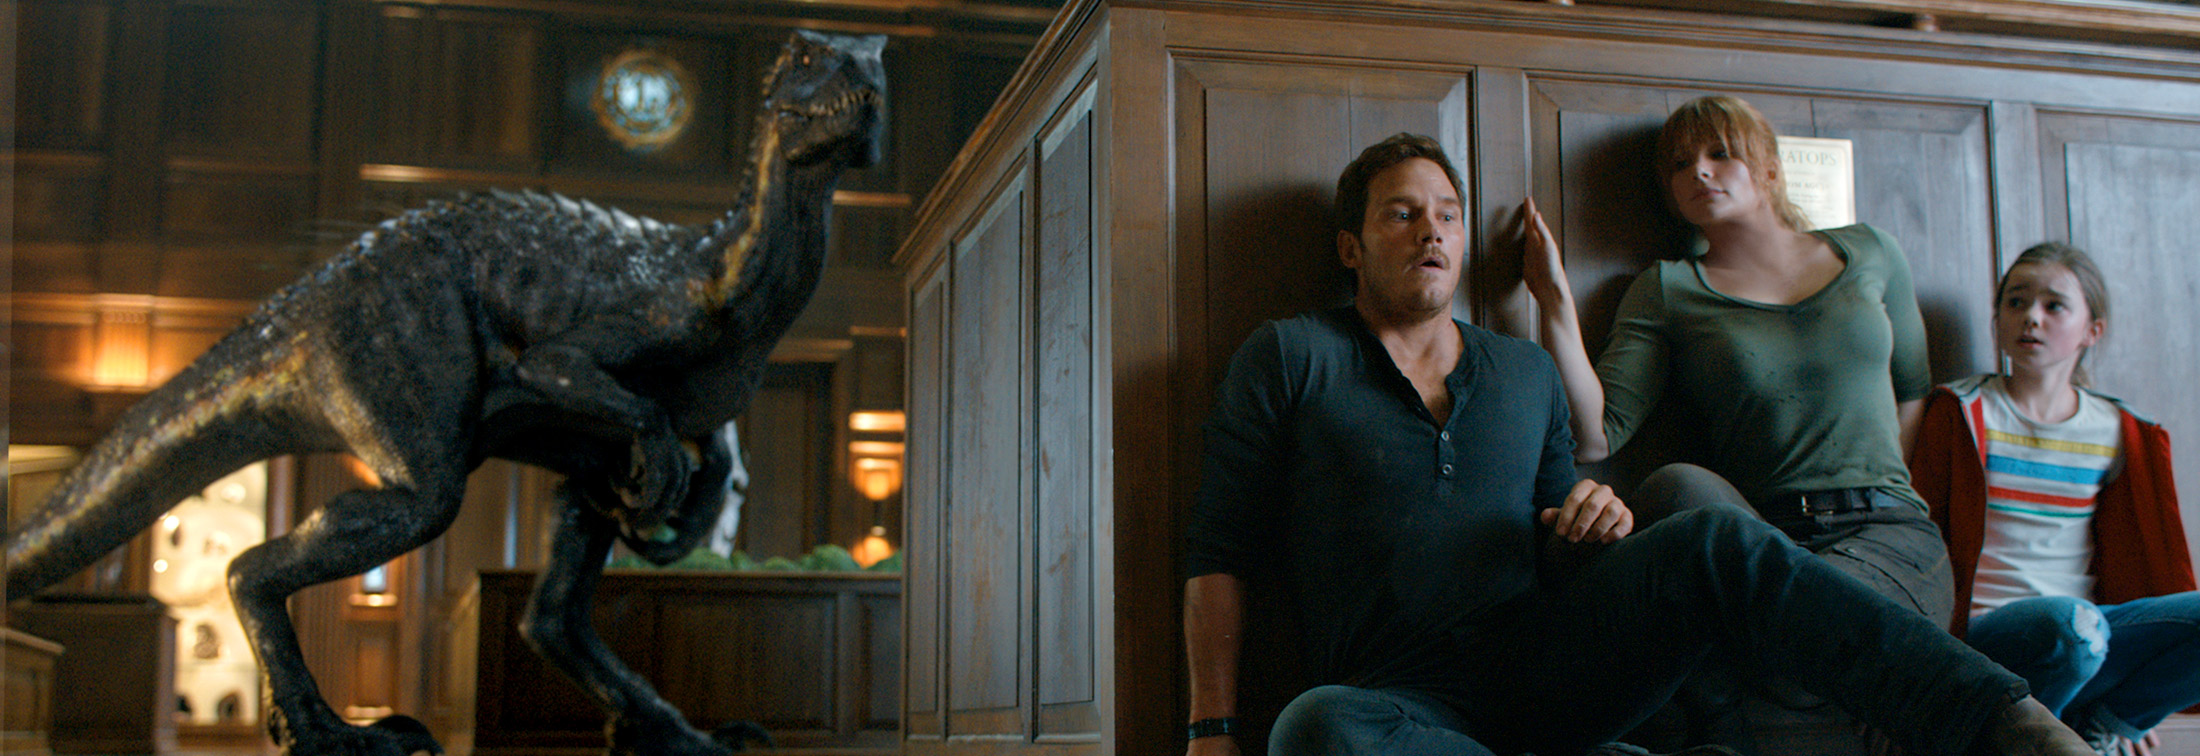 review, Jurassic World: Fallen Kingdom, Jurassic, World:, Fallen, Kingdom, film, movie, latest movies, new movie, movie ratings, current movie reviews, latest films, recent movies, current movies, movie critics, new movie reviews, latest movie reviews, latest movies out, the latest movies, review film, latest cinema releases, Australian reviews, cinema, cinema reviews, Chris Pratt, Bryce Dallas Howard, Rafe Spall, Toby Jones, Justice Smith, Daniella Pineda, Ted Levine, Jeff Goldblum, James Cromwell, Bd Wong, Colin Trevorrow, Juan Antonio Bayona